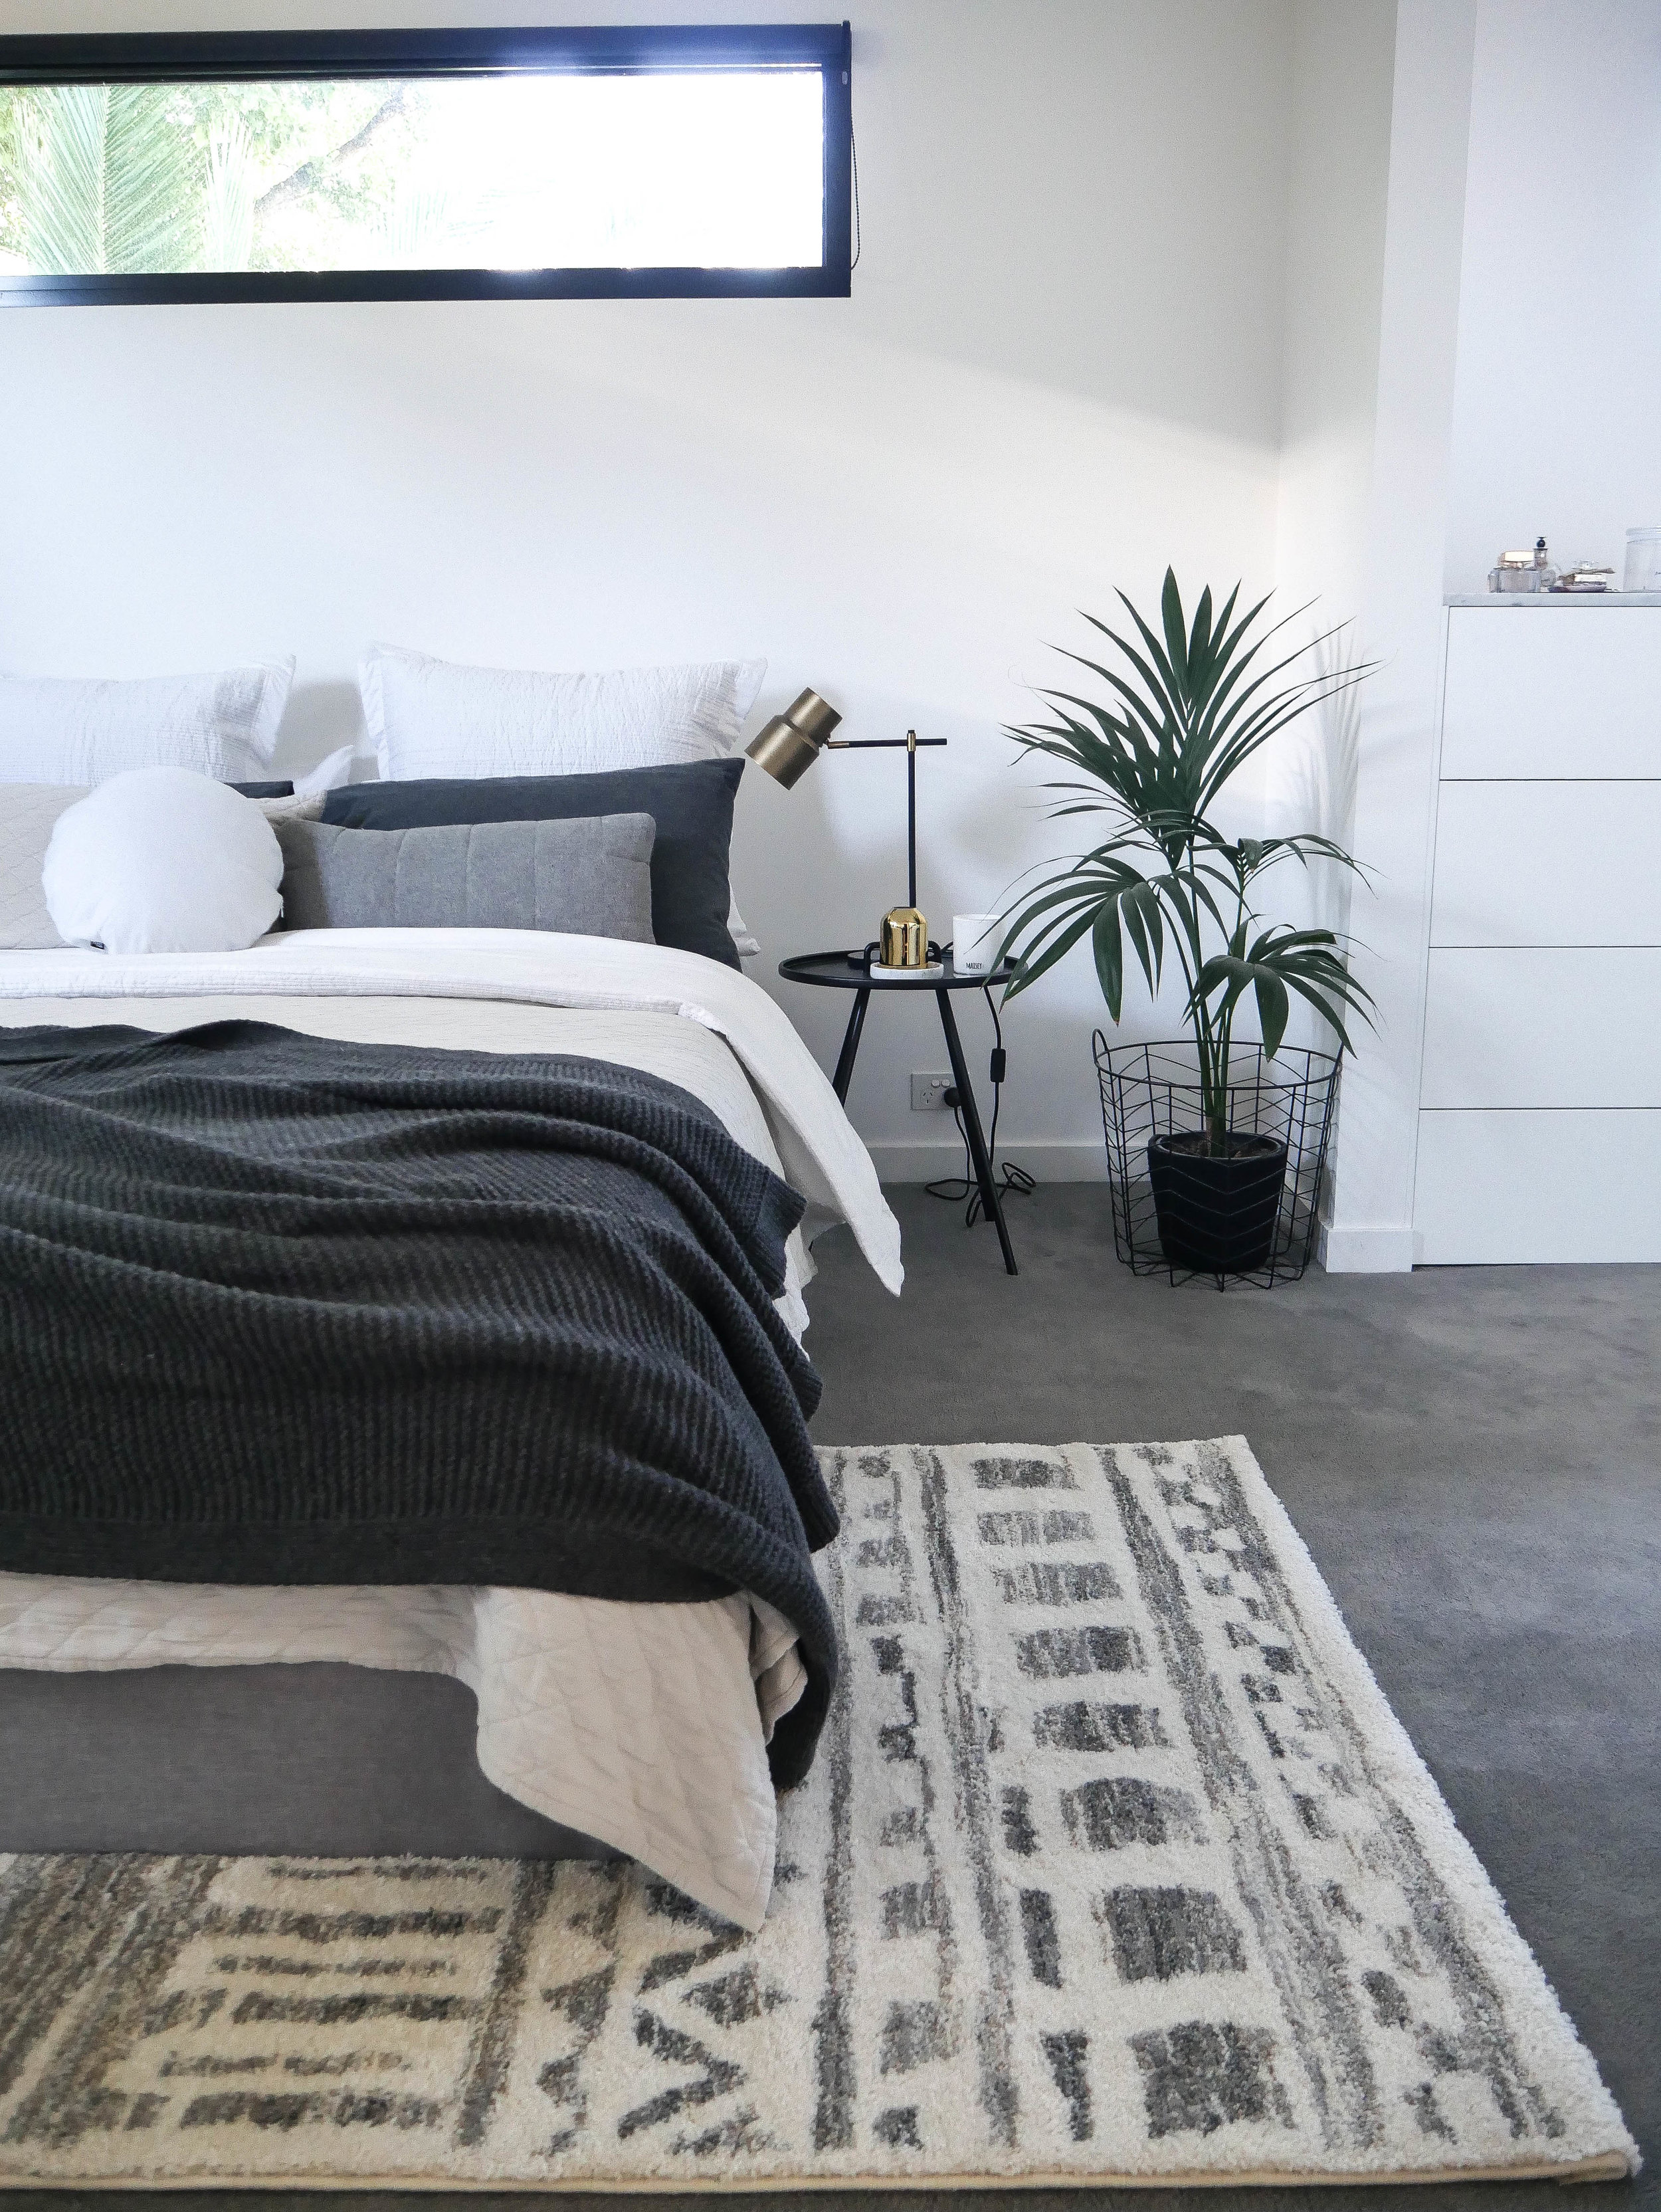 For my bedroom I chose the  Jordan Modern Rug  as I love the pattern and colours but it's also sooooo soft and fluffy!